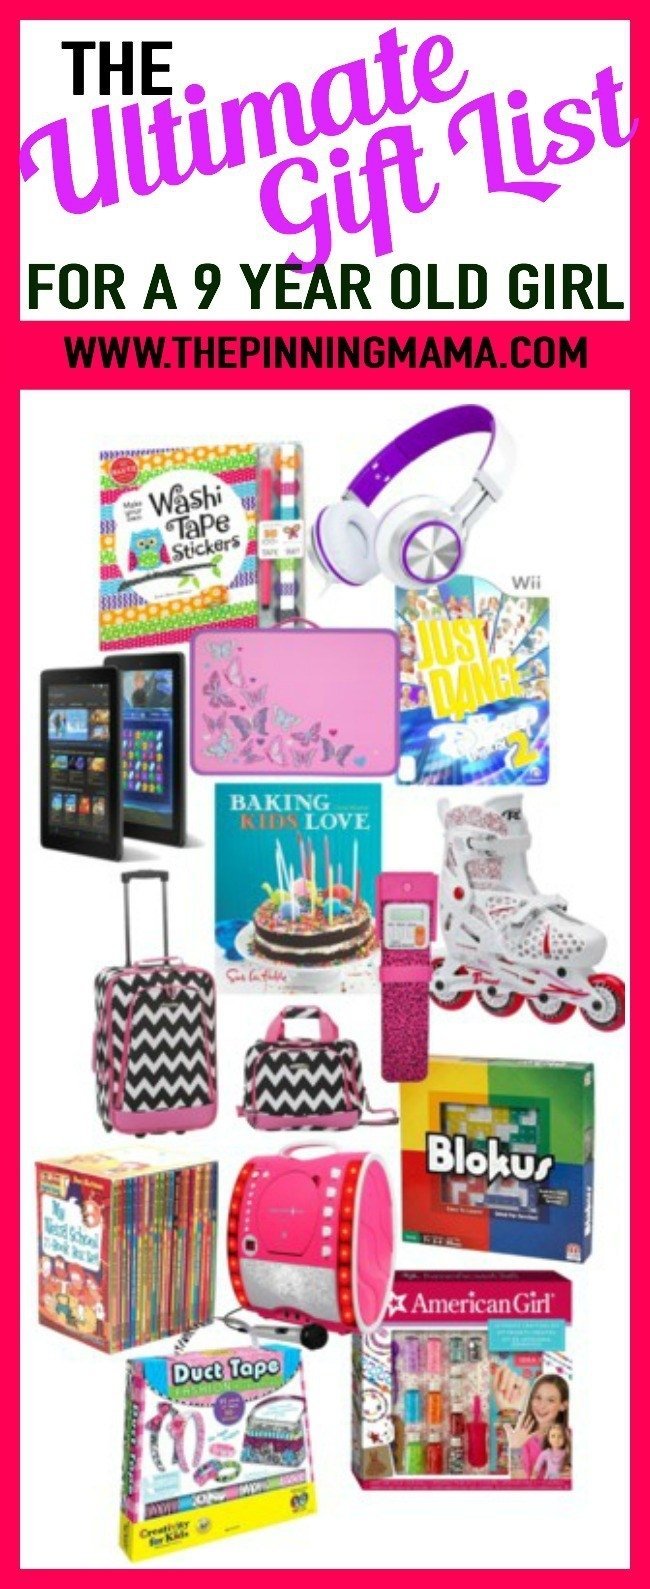 10 Spectacular Gift Ideas For 9 Yr Old Girls the ultimate gift list for a 9 year old girl top toys girls age 9 12 2020